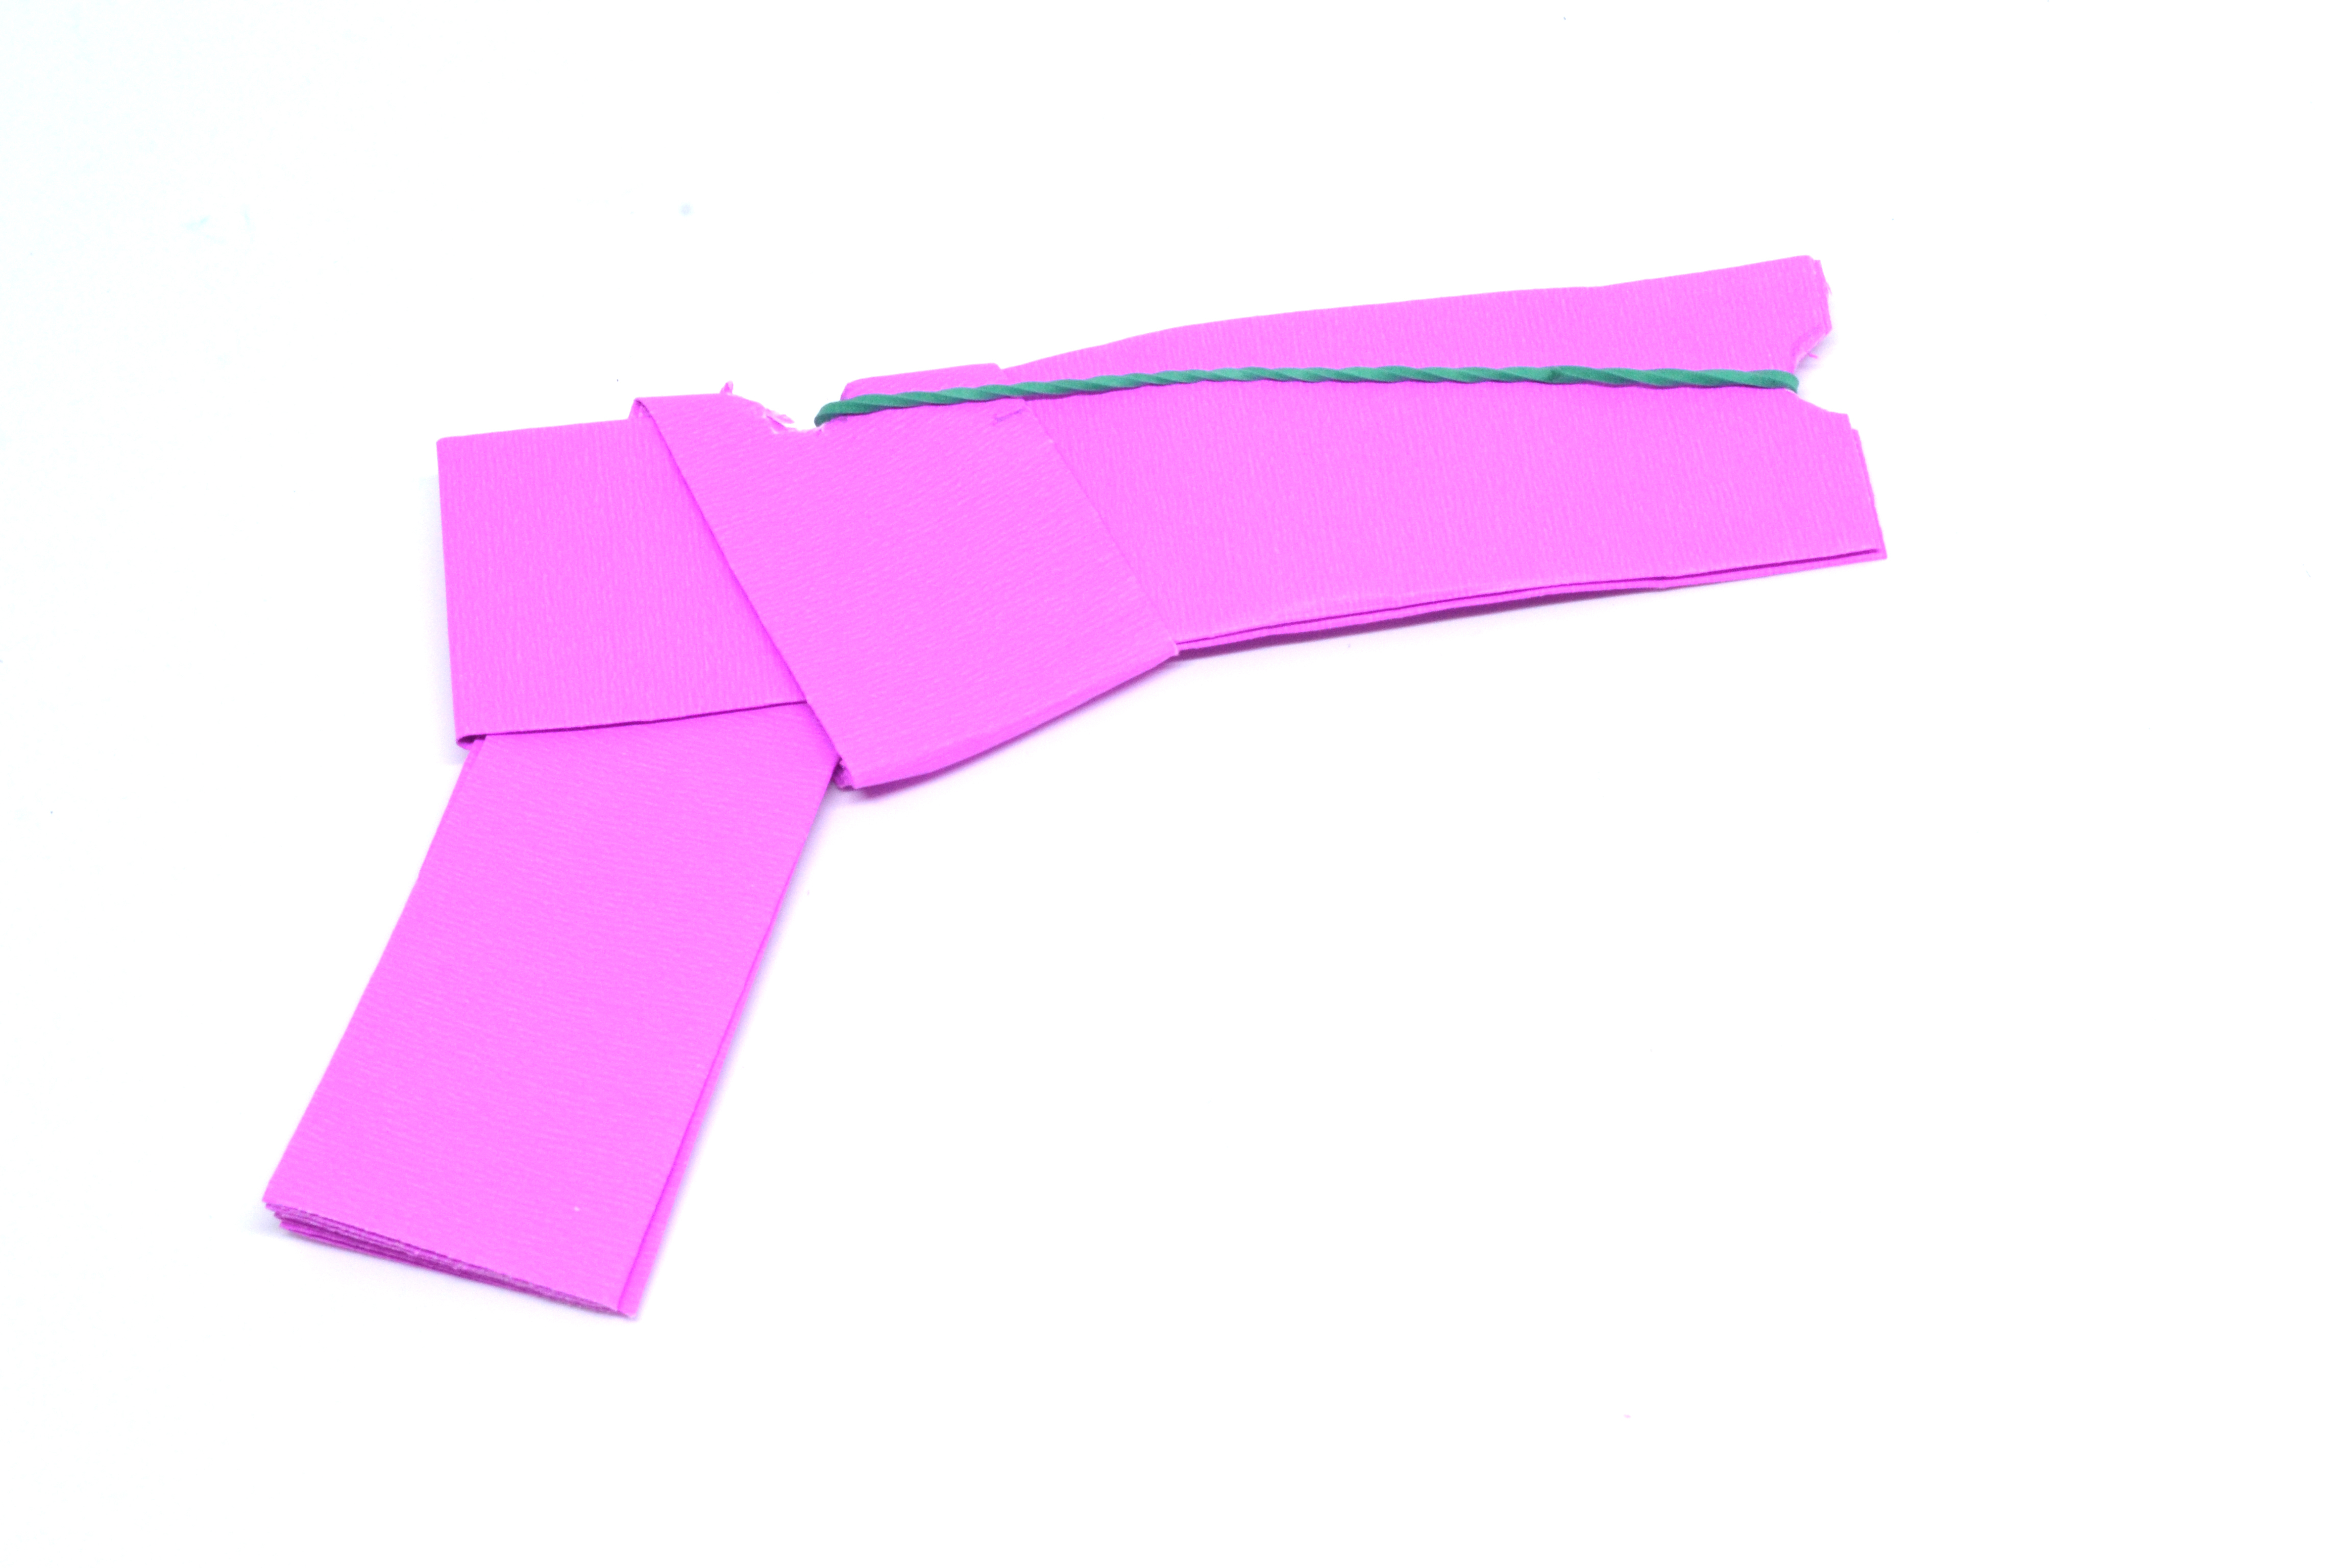 How To Make A Origami Gun 2 Simple Ways To Make A Paper Gun That Shoots Wikihow